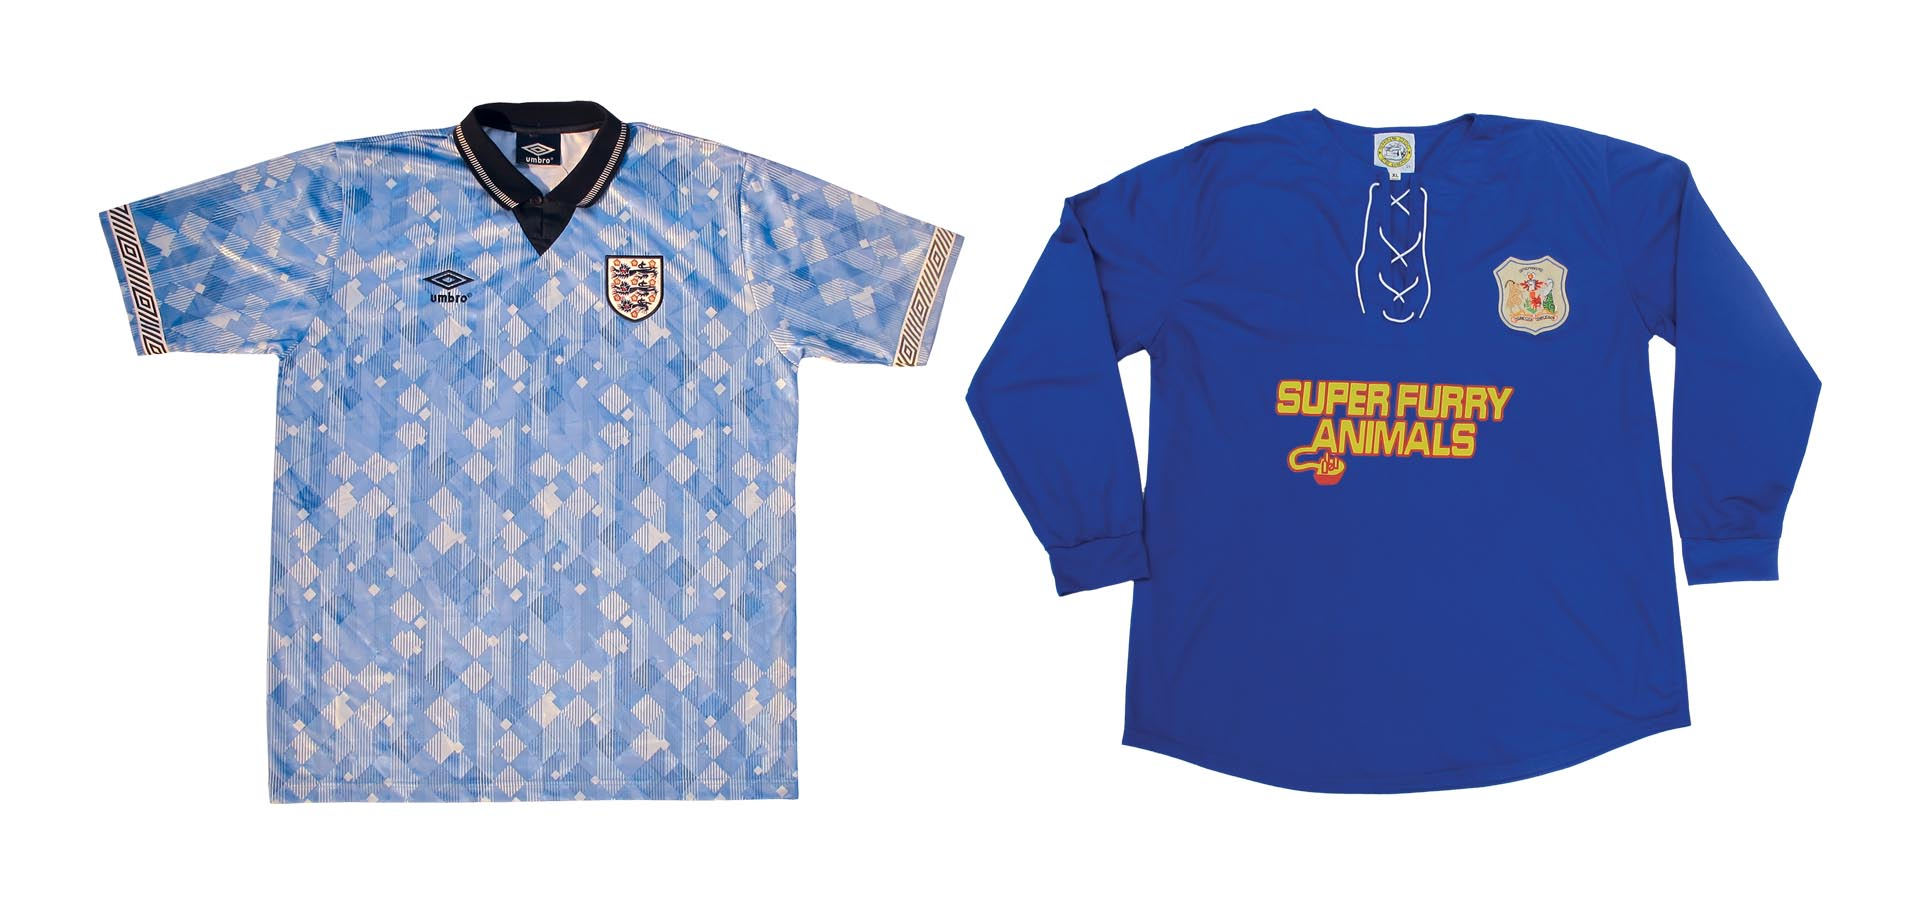 neal-heard-jacket-required-art-of-the-football-shirt_0006_england-1990-3rd-sky-world-in-motion-3